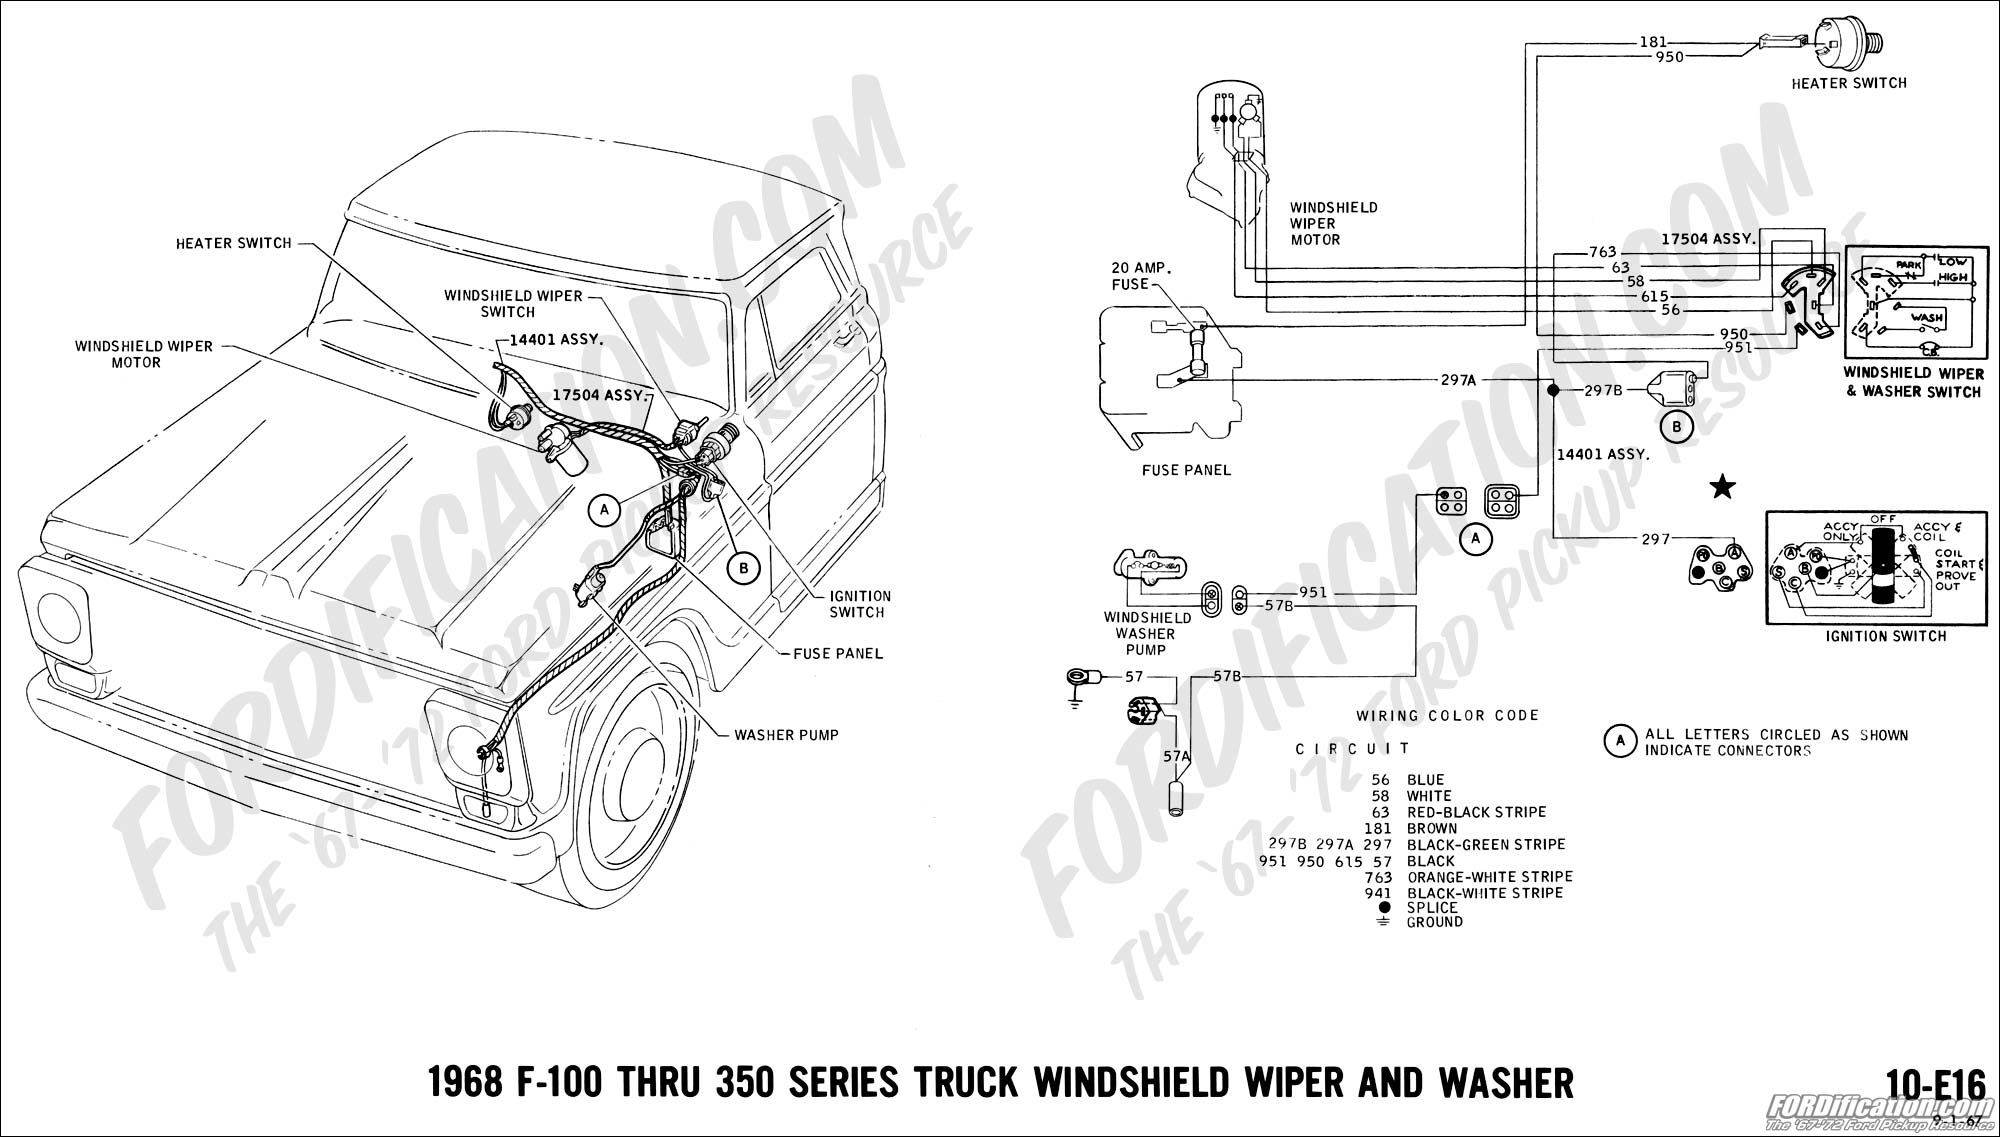 Schematics i in addition 75 Corvette Wiring Diagram likewise 1955 Corvette Fuse Box Diagram together with 97 Tahoe Ignition Switch Wiring Diagram furthermore 84 Chevy Blazer Wiring Diagram. on 1982 gmc radio wiring diagram